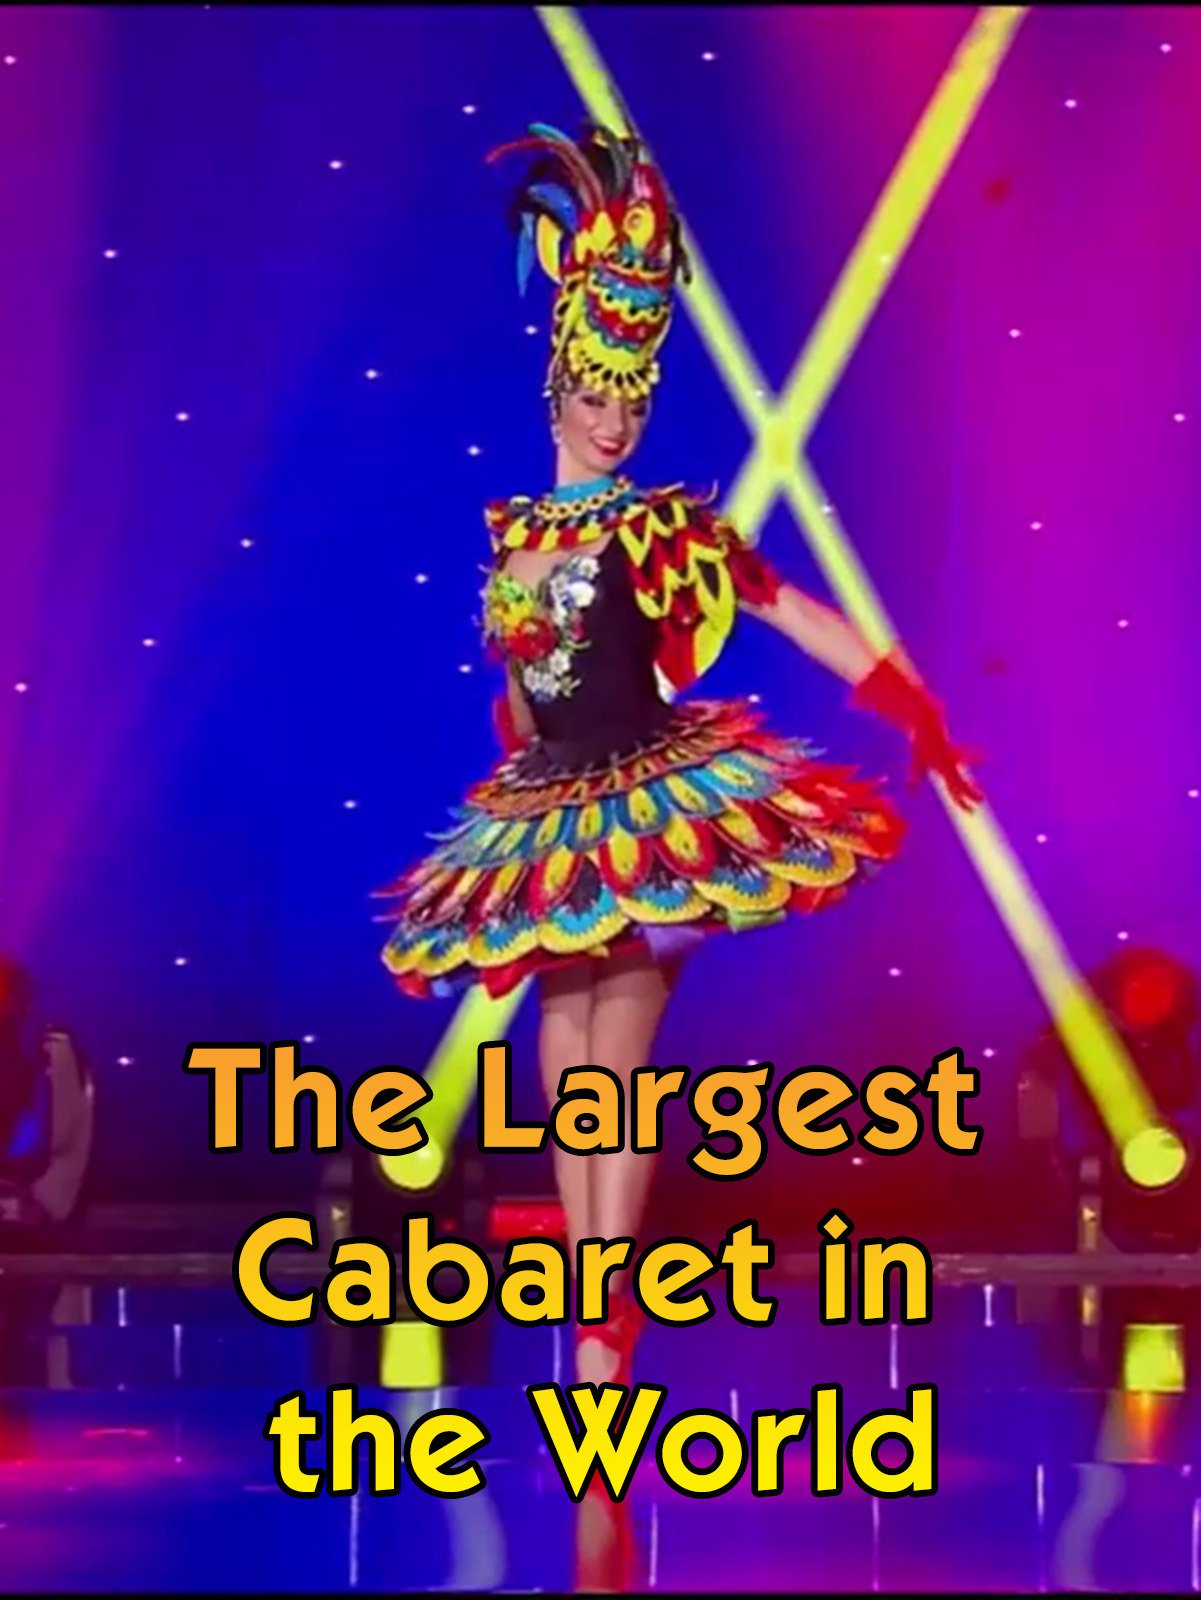 The Largest Cabaret in the World